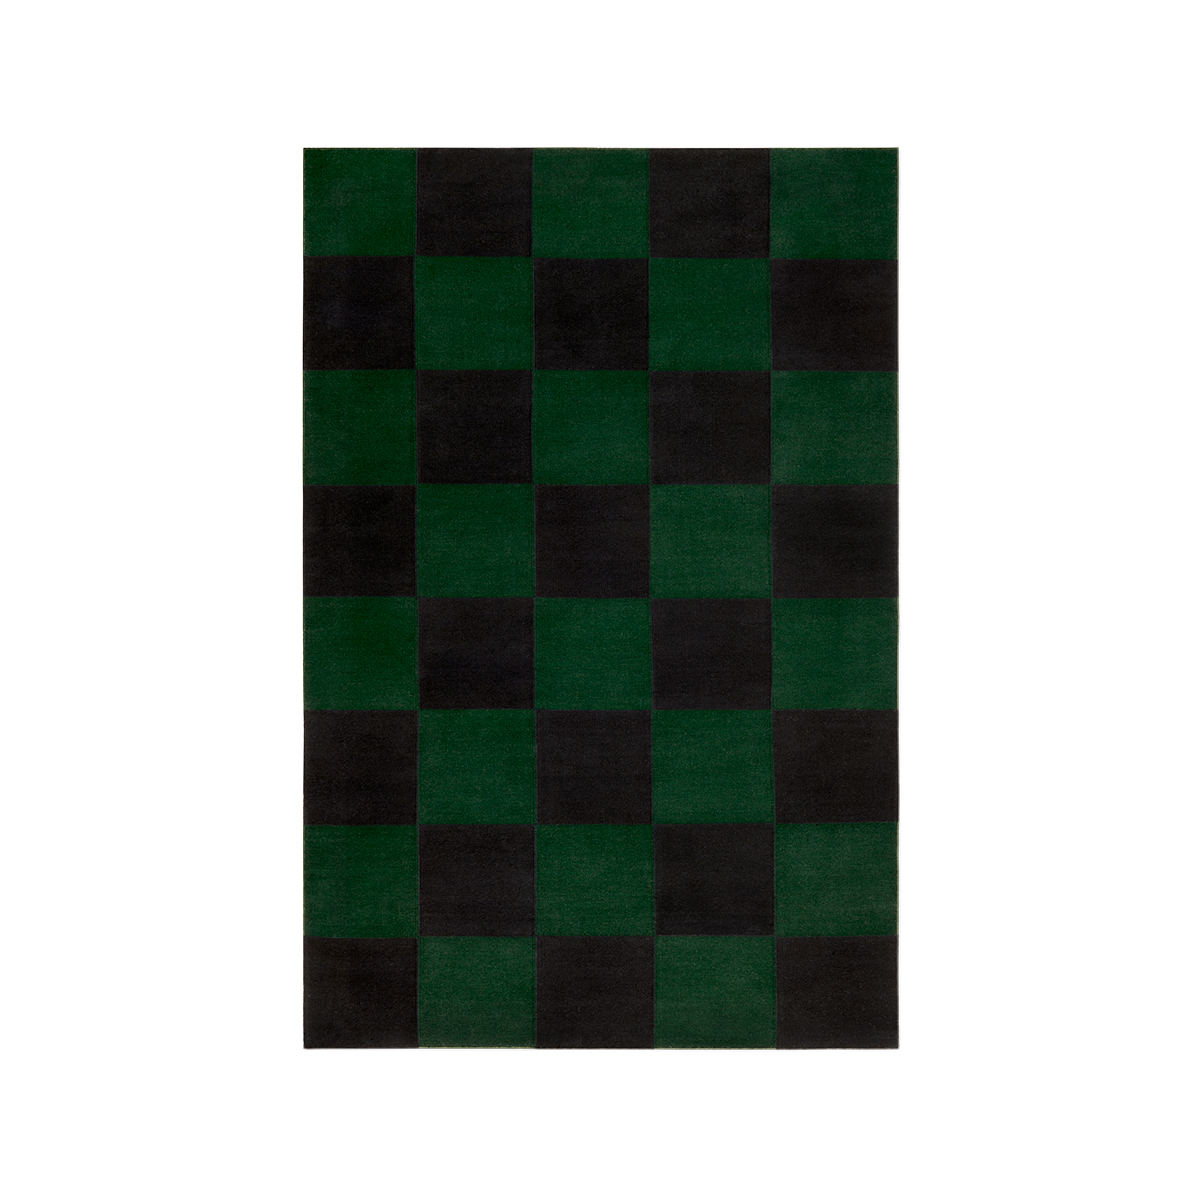 Product image of the Square Green Flatweave rug.